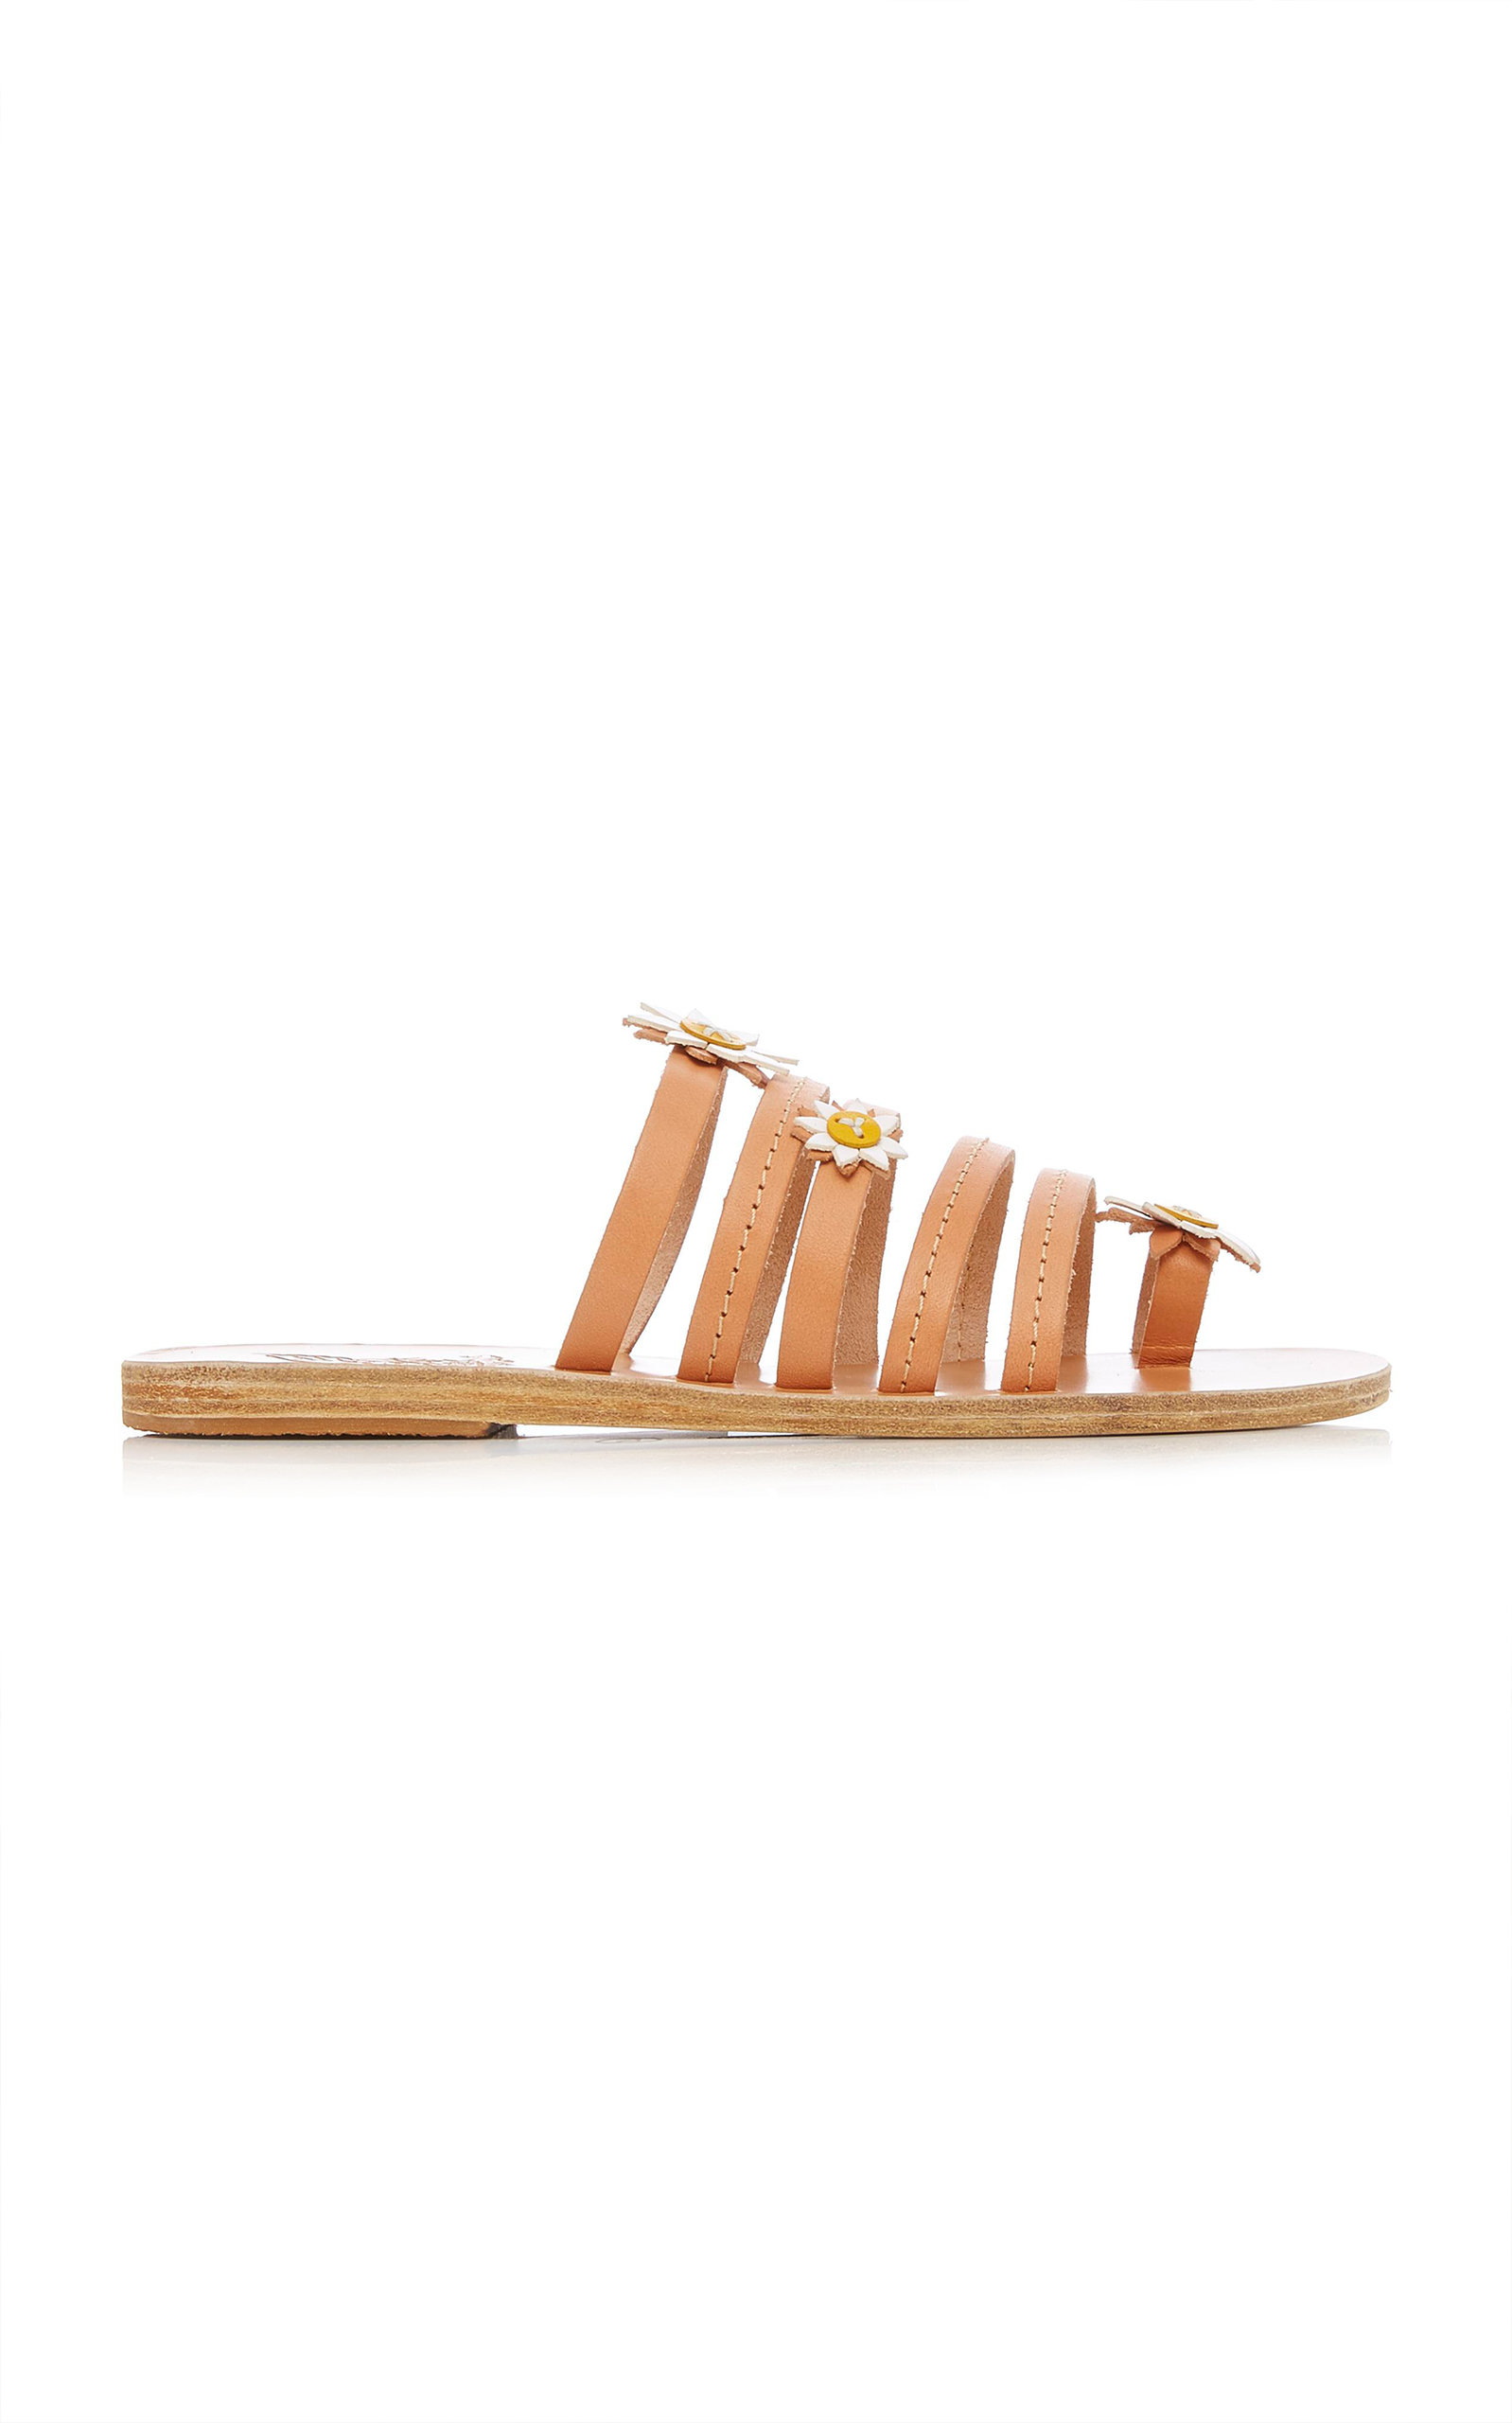 + FABRIZIO VITI VICTORIA APPLIQUÉD LEATHER SANDALS